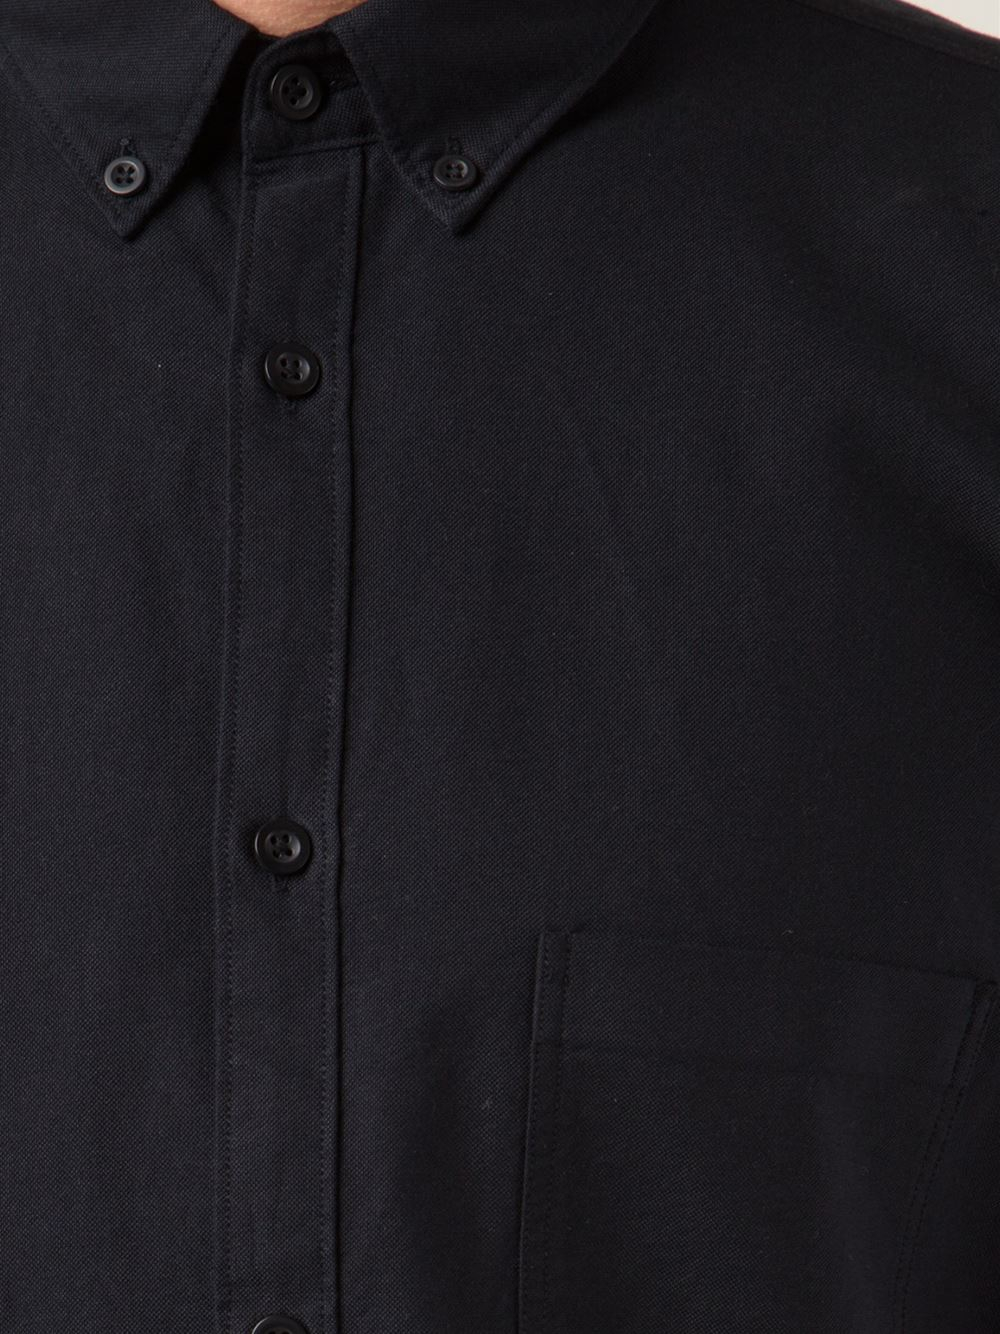 Zanerobe Classic Button Down Shirt In Black For Men Lyst